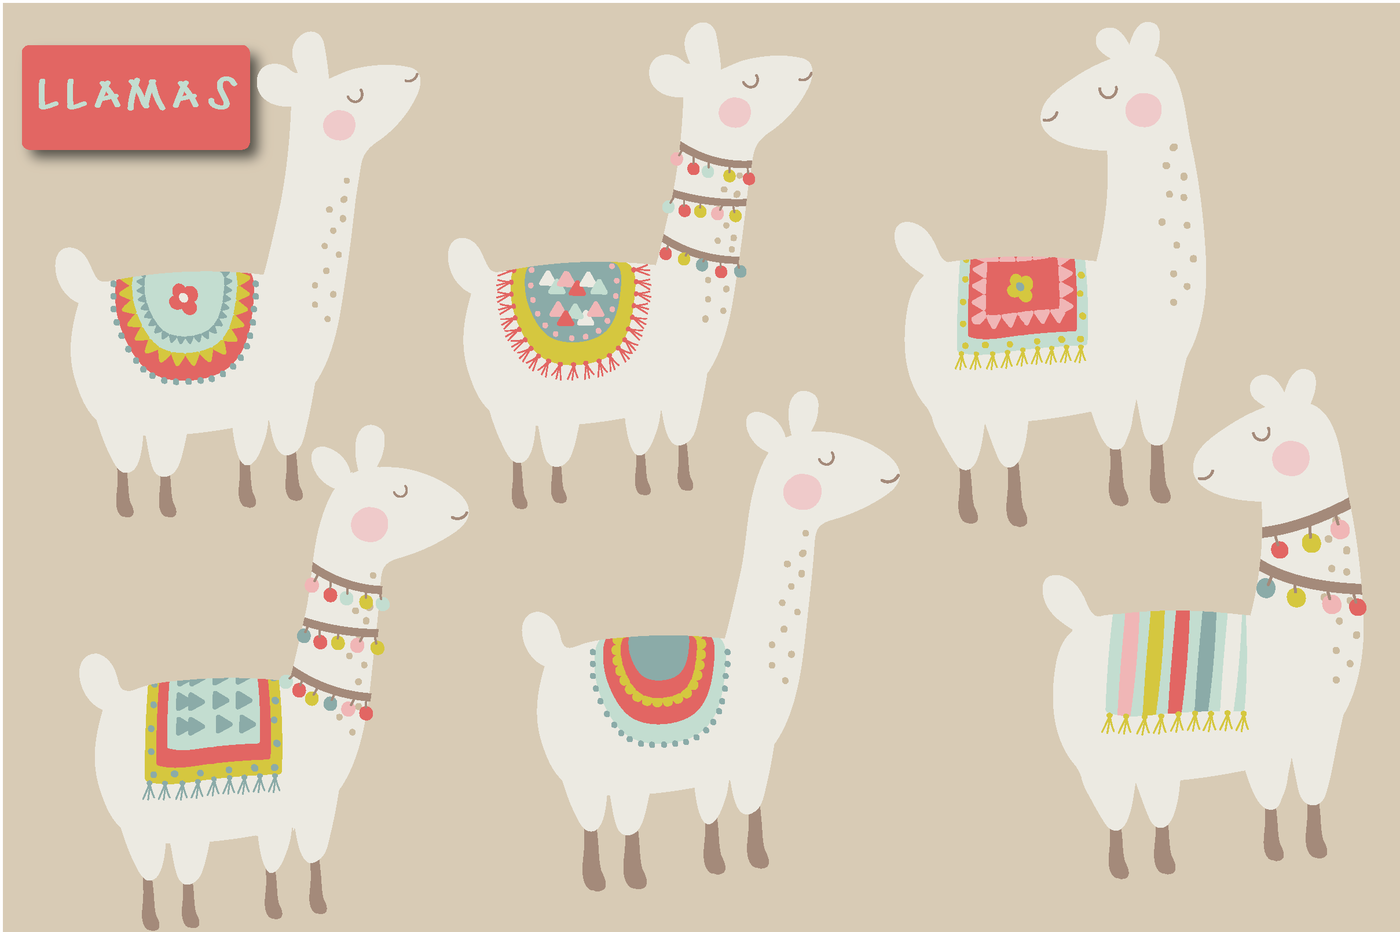 Llama clipart. Cute by poppymoon design